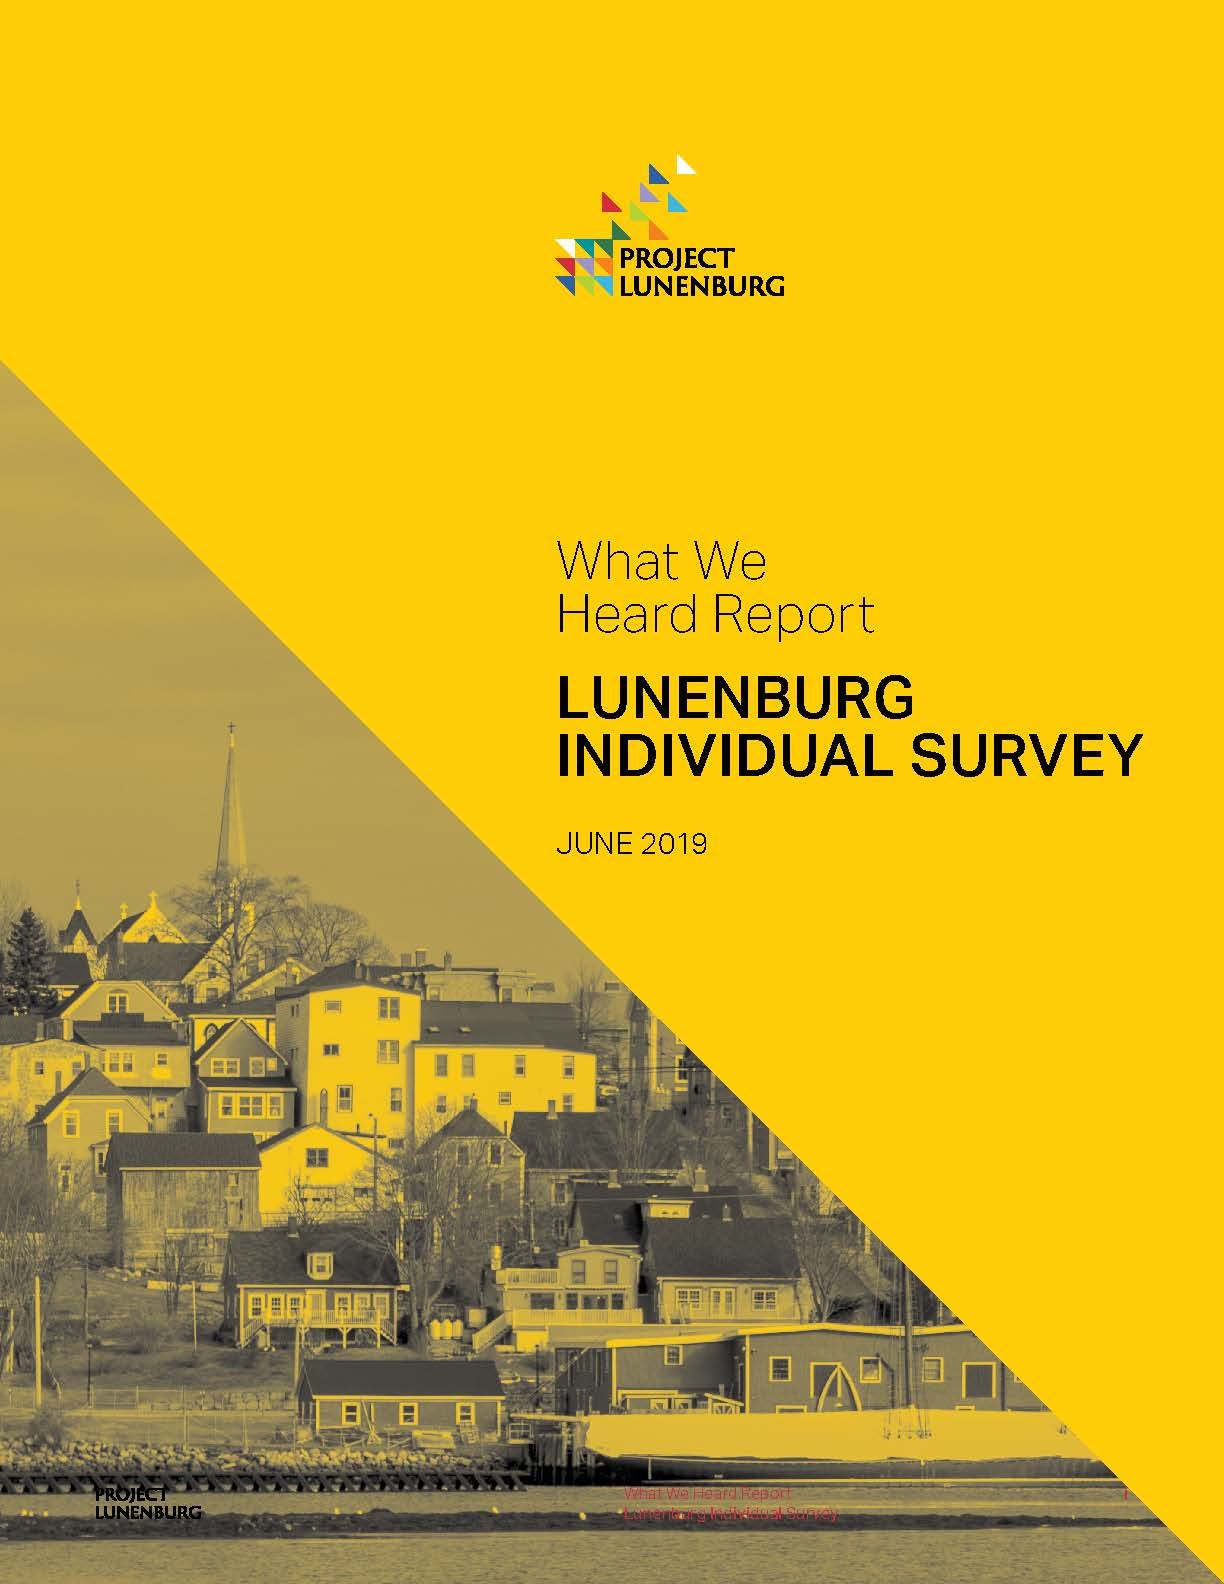 What We Heard: Individual Survey  A general survey asking a variety of questions to kickstart Project Lunenburg. Hosted online, responses were collected between February 27, 2019 and April 7, 2019.